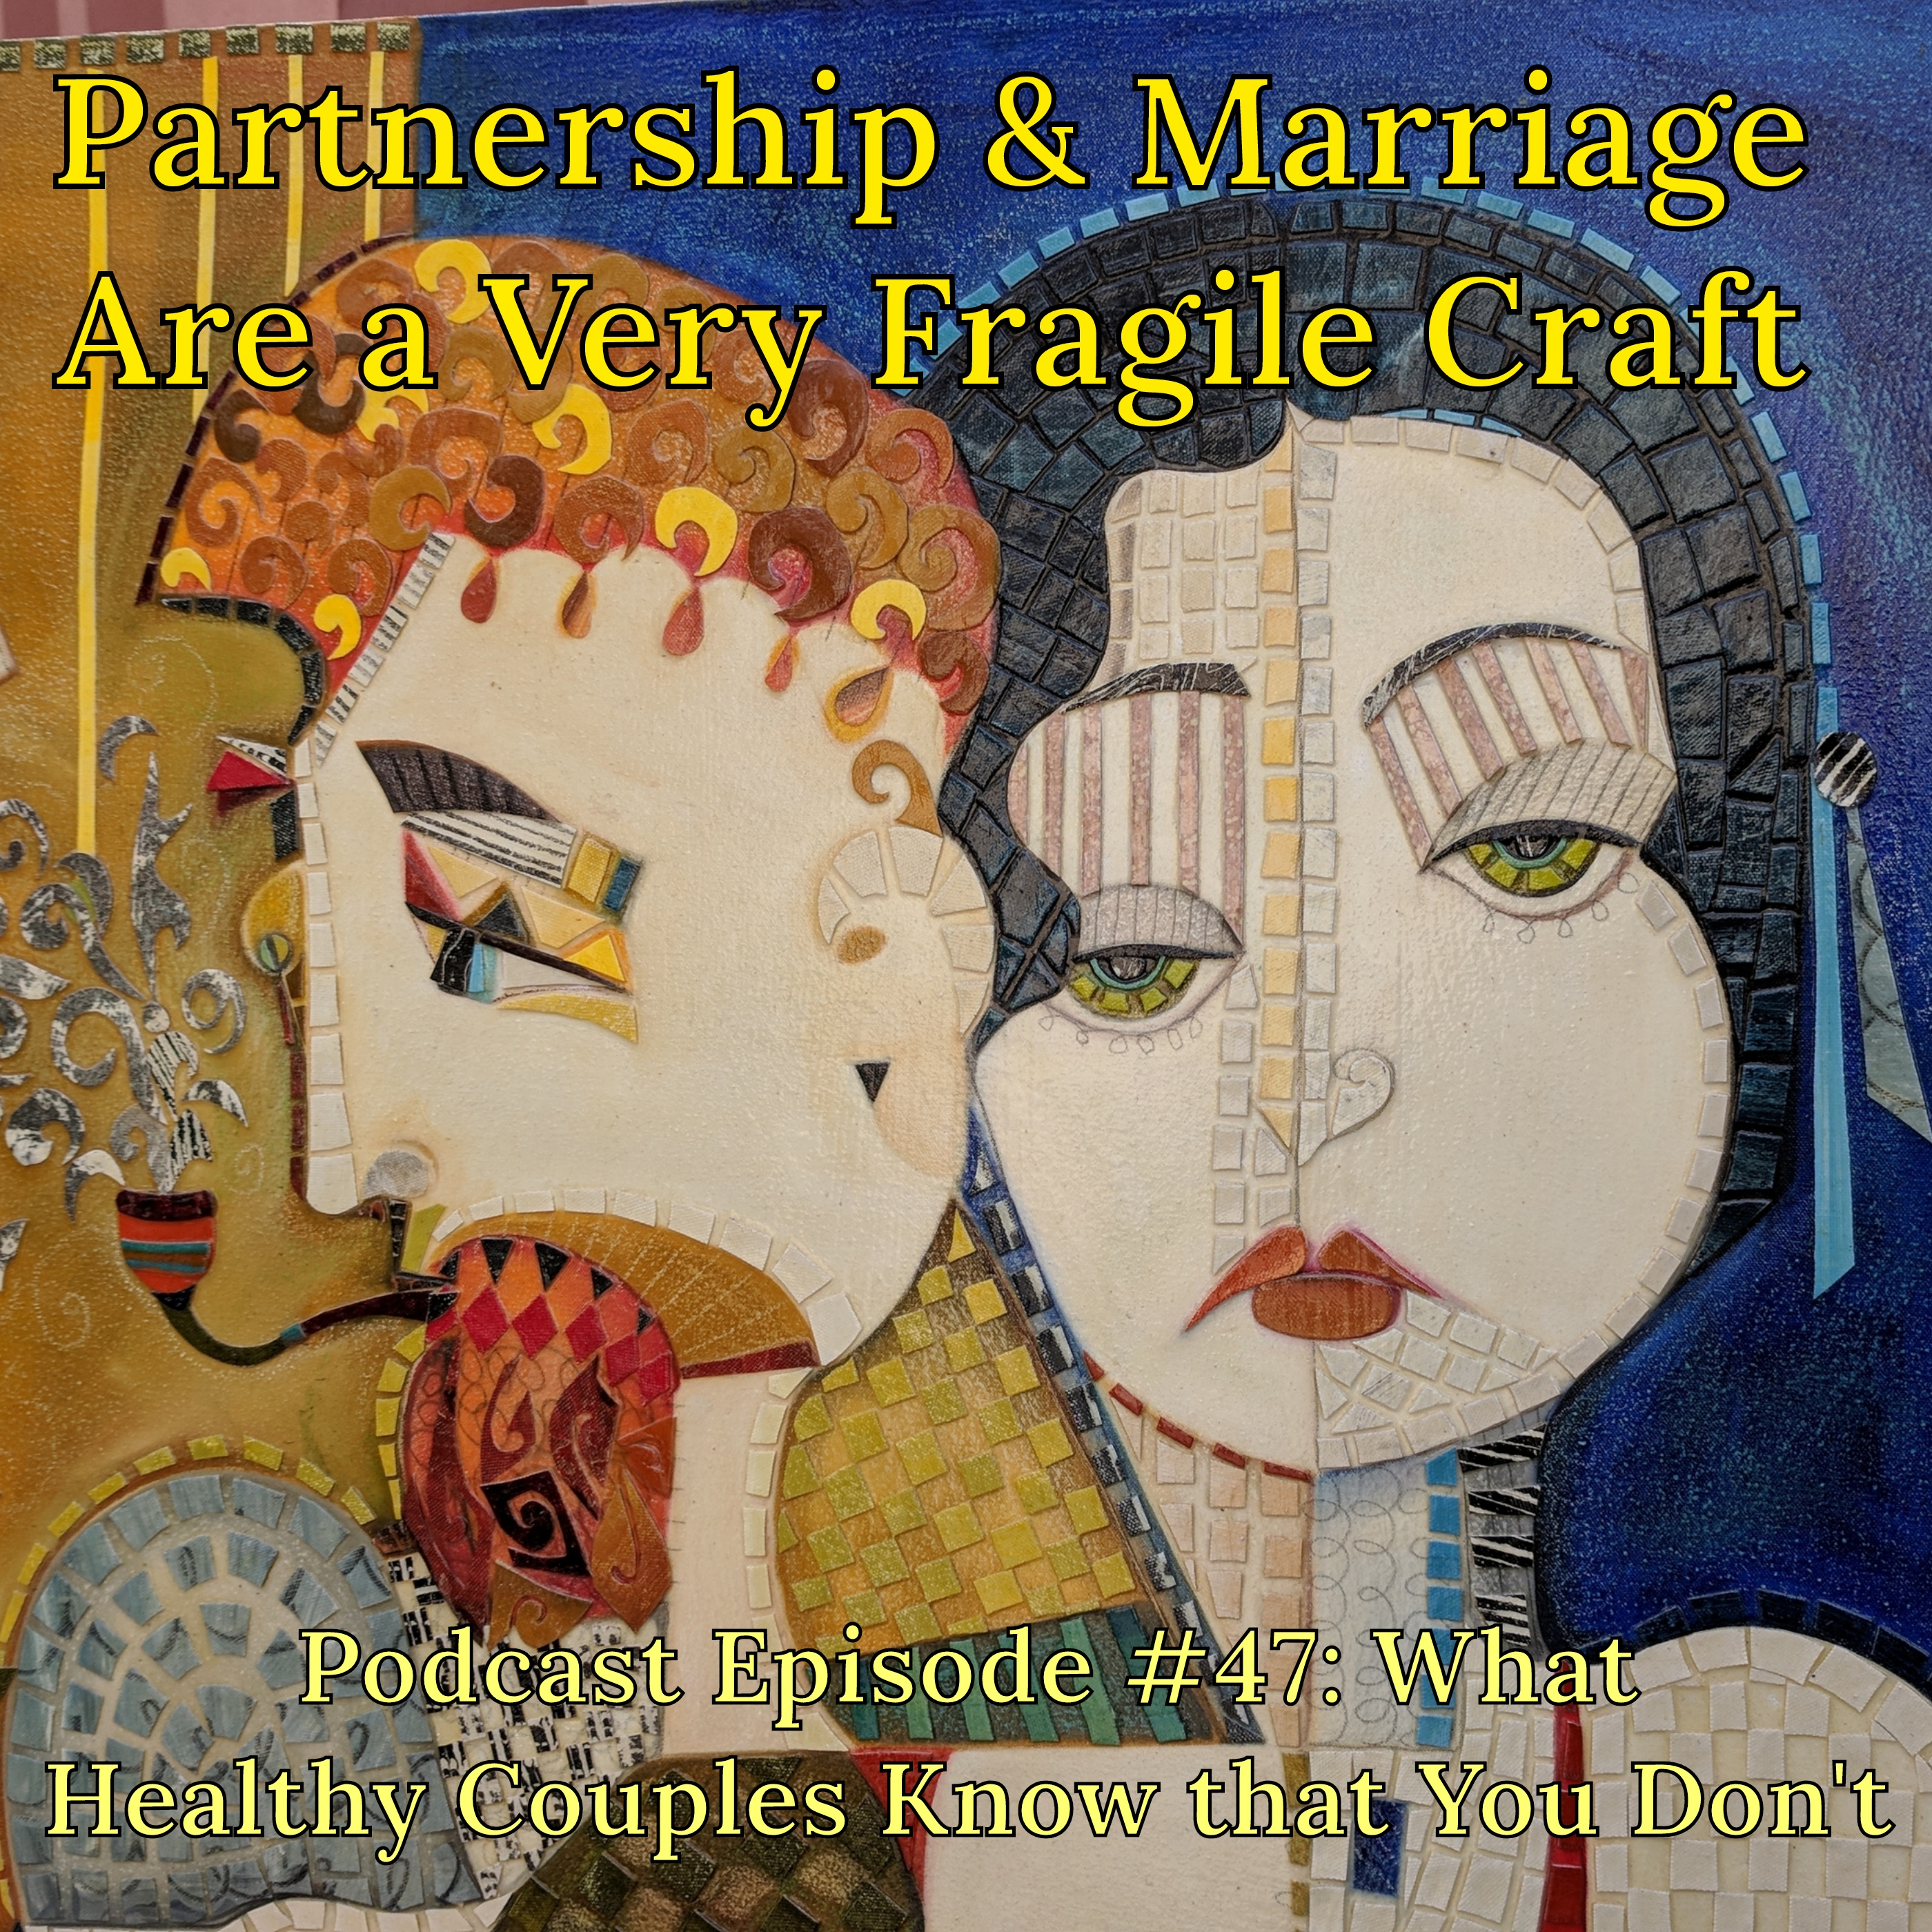 What Healthy Couples Know That You Don't - Partnership & Marriage Are Fragile Craft